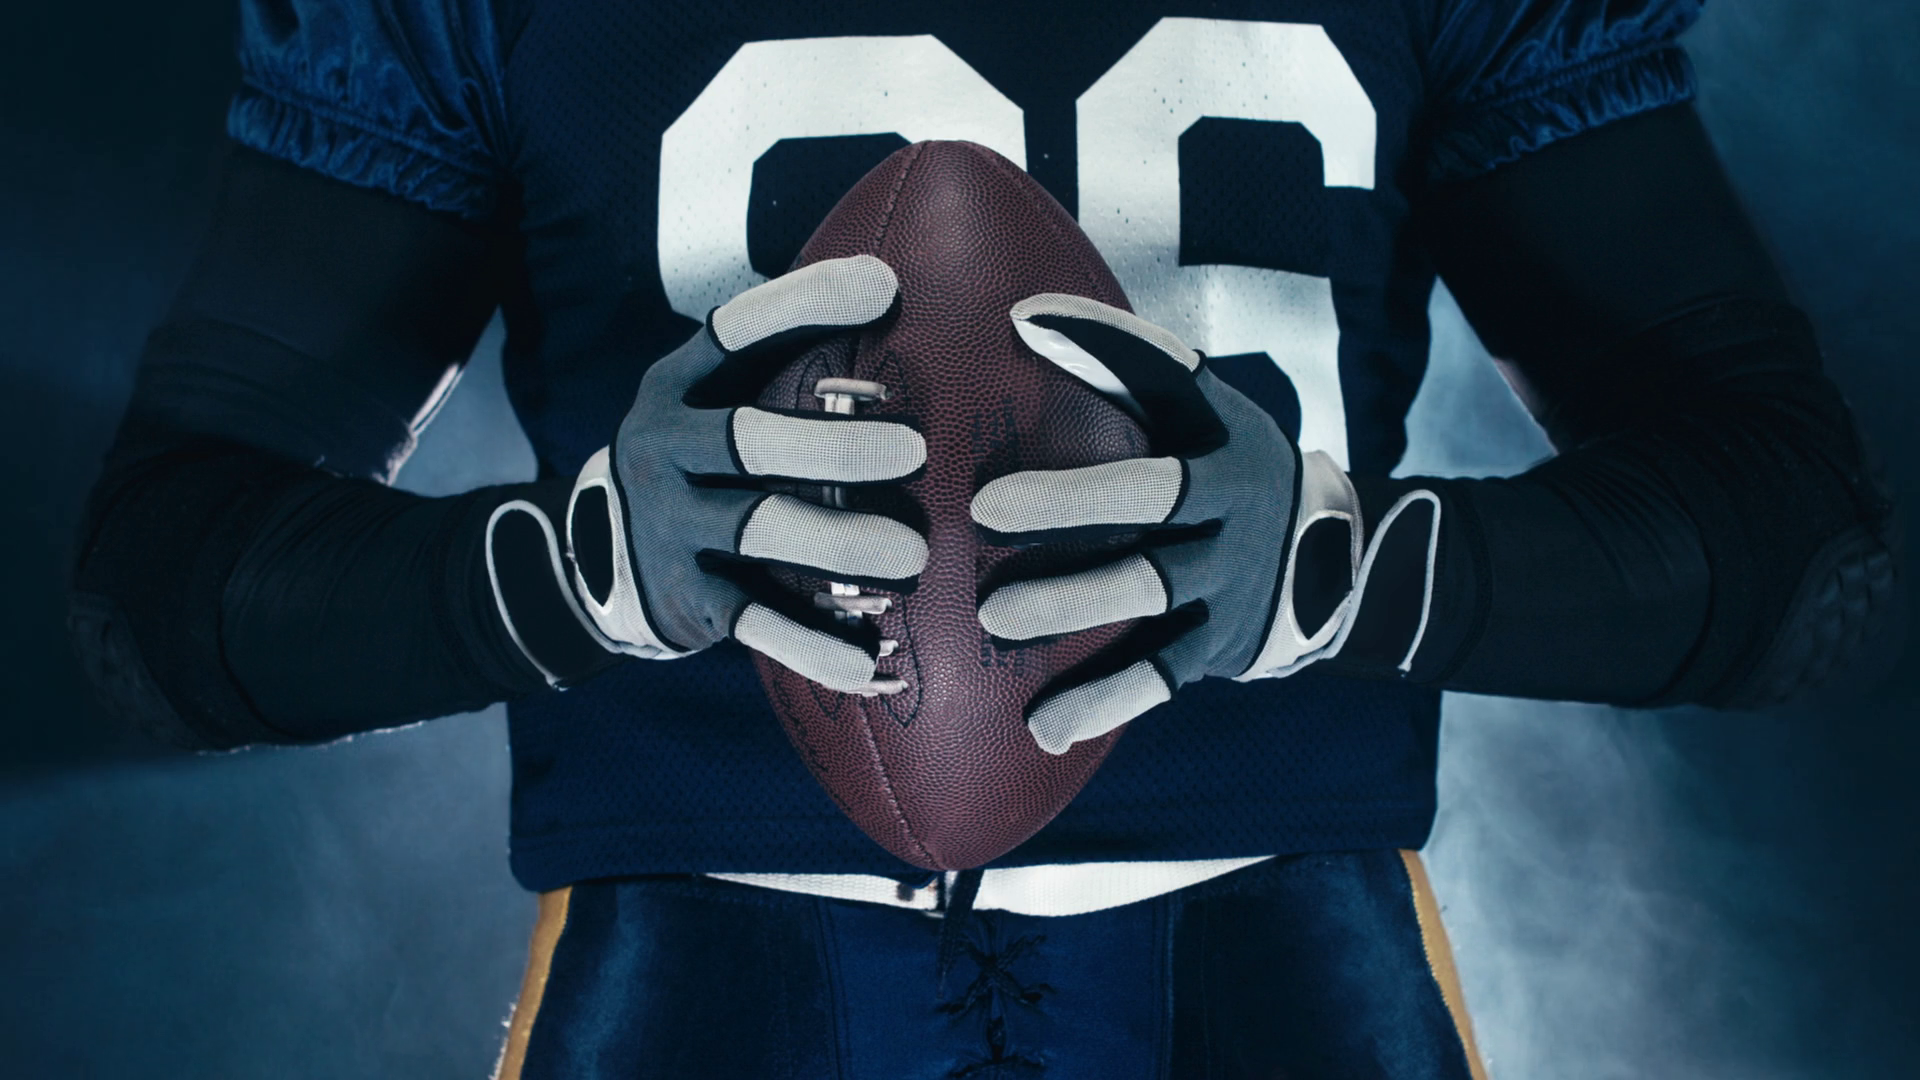 videoblocks-4k-cinemagraph-seamless-loop-extreme-cu-caucasian-male-american-football-player-holding-a-ball-raw-edited-footage_b0eewo_0e_thumbnail-full01.png